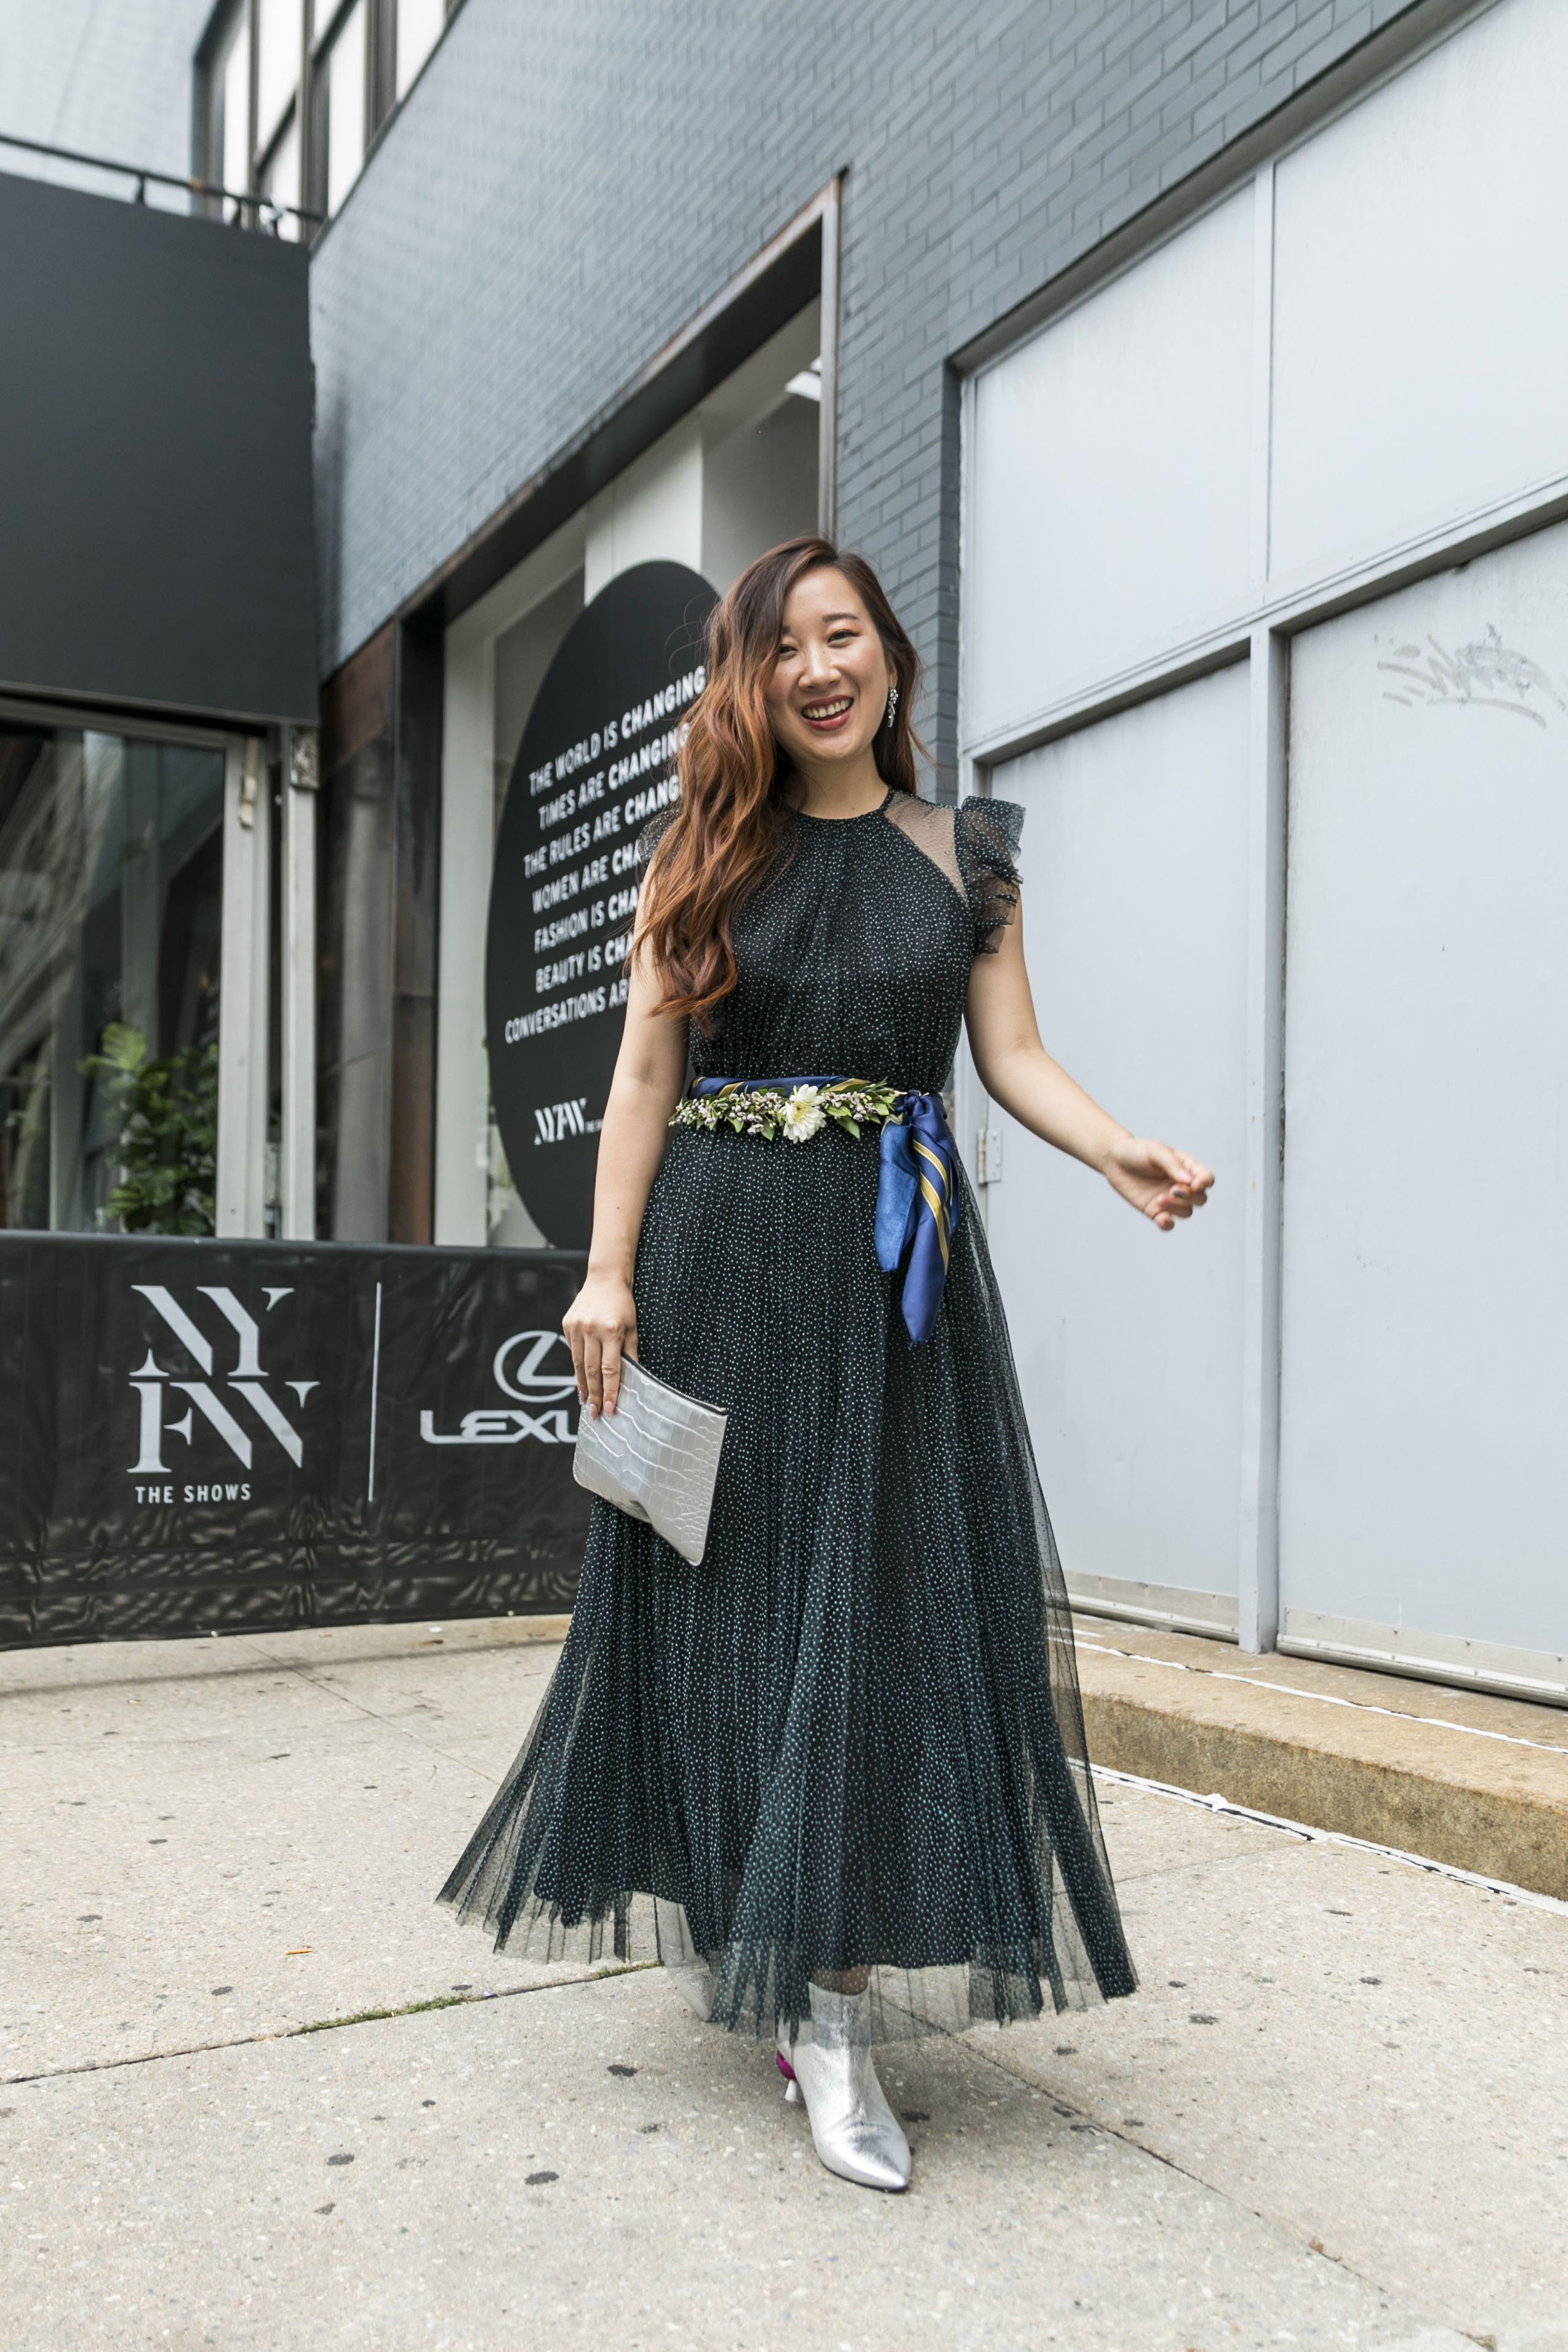 #NYFW Day 6 - A tulle dress featuring a silver pouch by Jeff Wan.